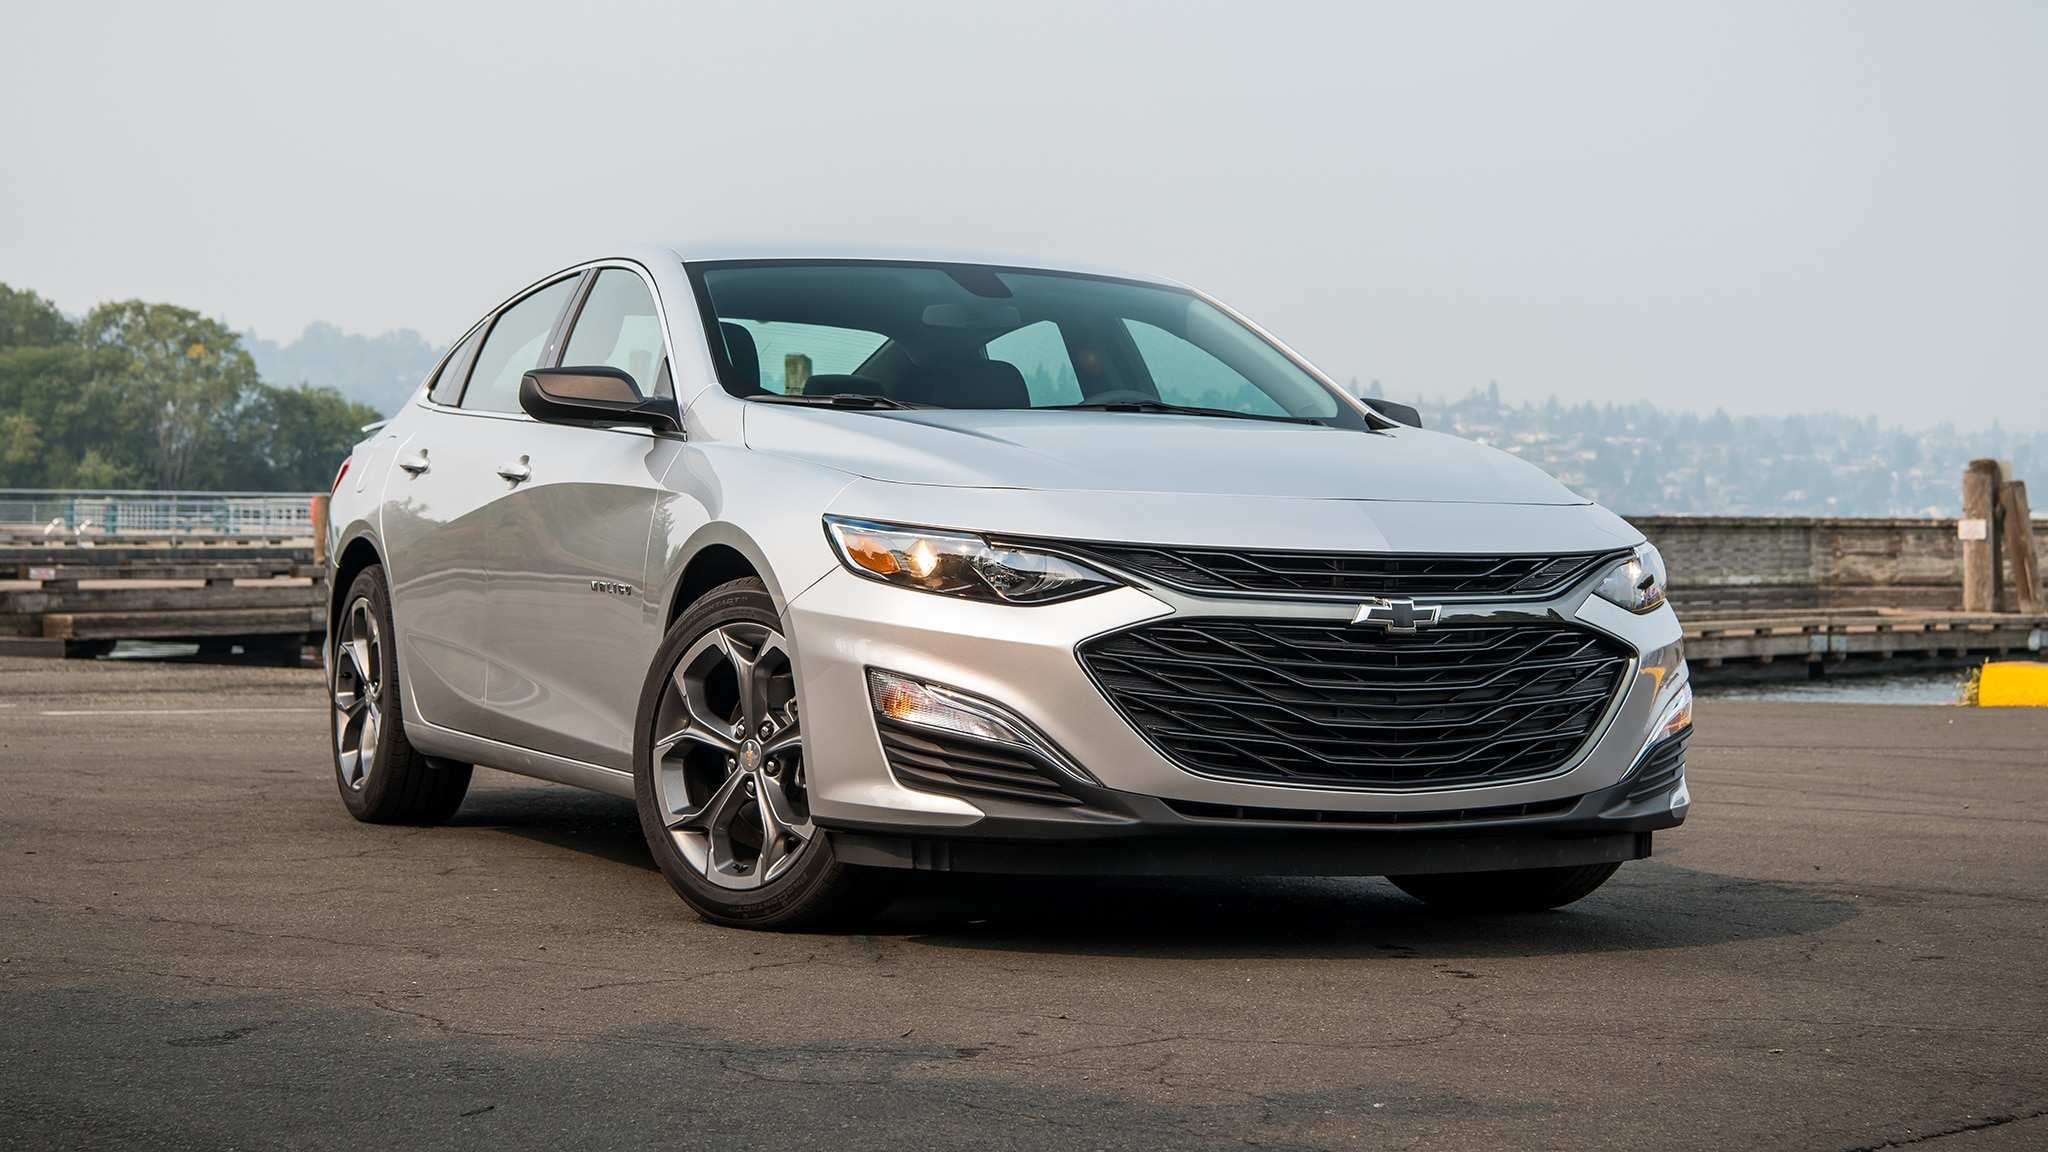 64 All New 2019 Chevy Malibu Ss History